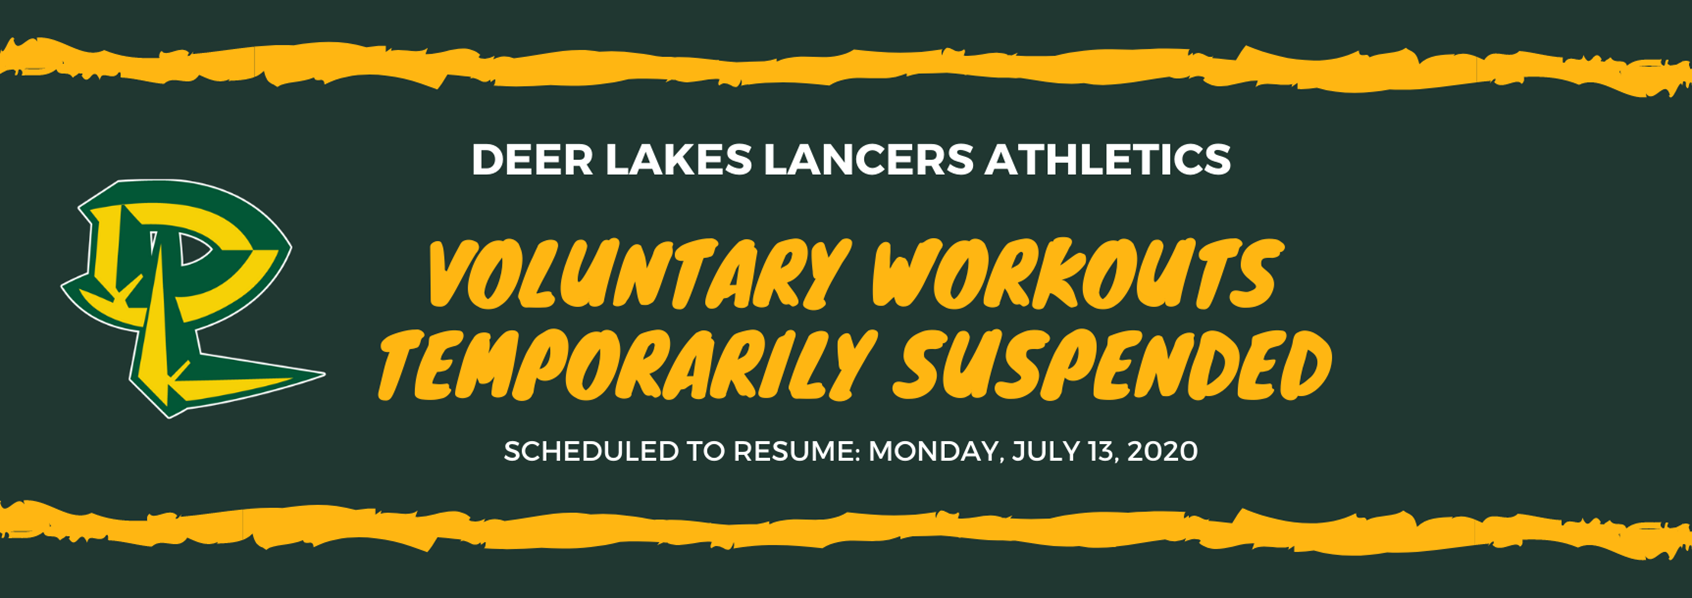 Voluntary Workouts Suspended